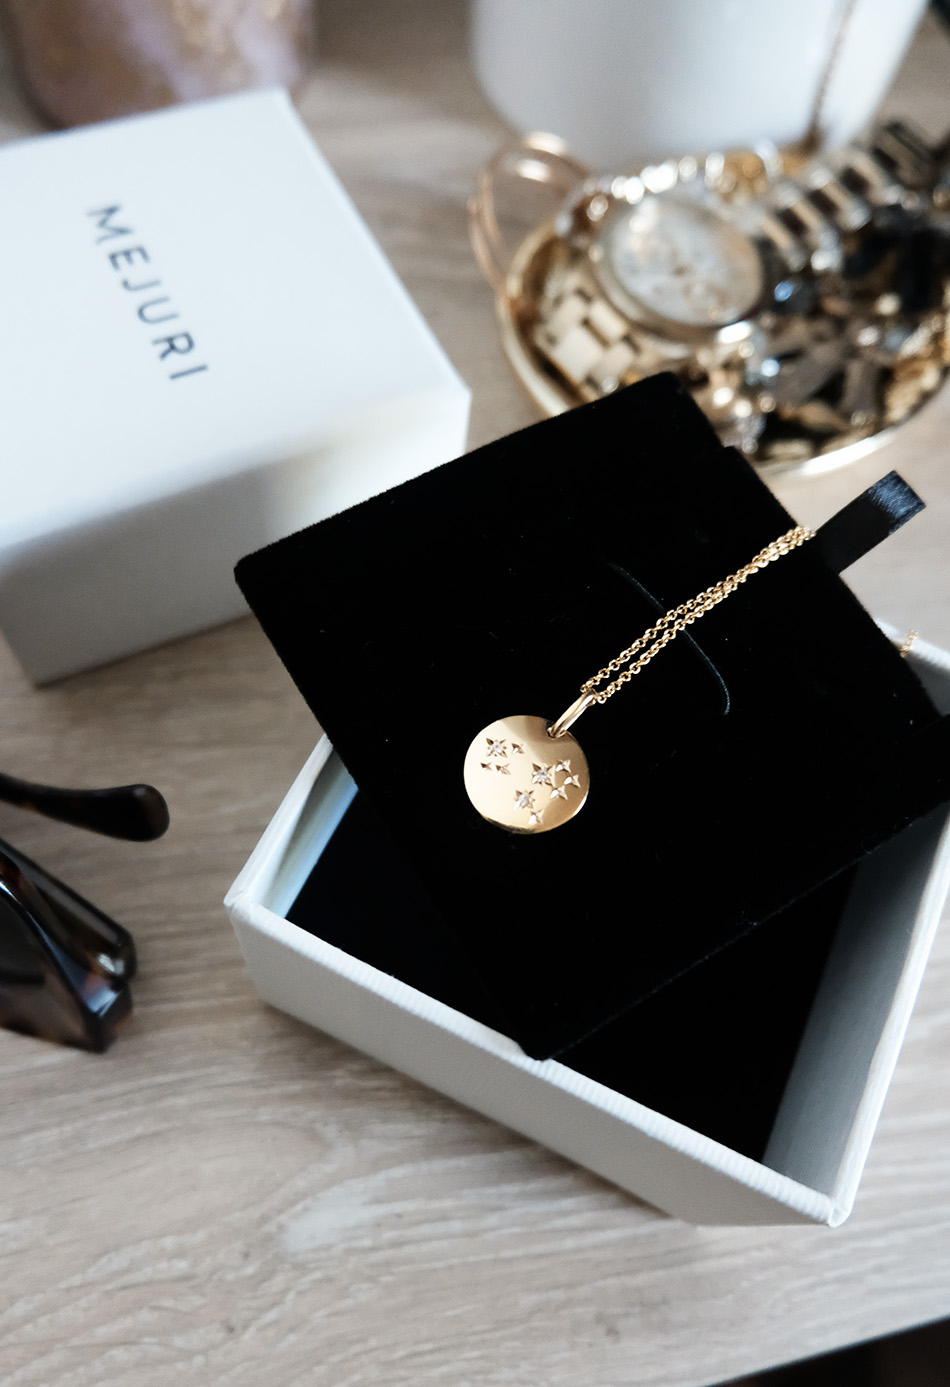 mejuri jewelry review | zodiac leo necklace